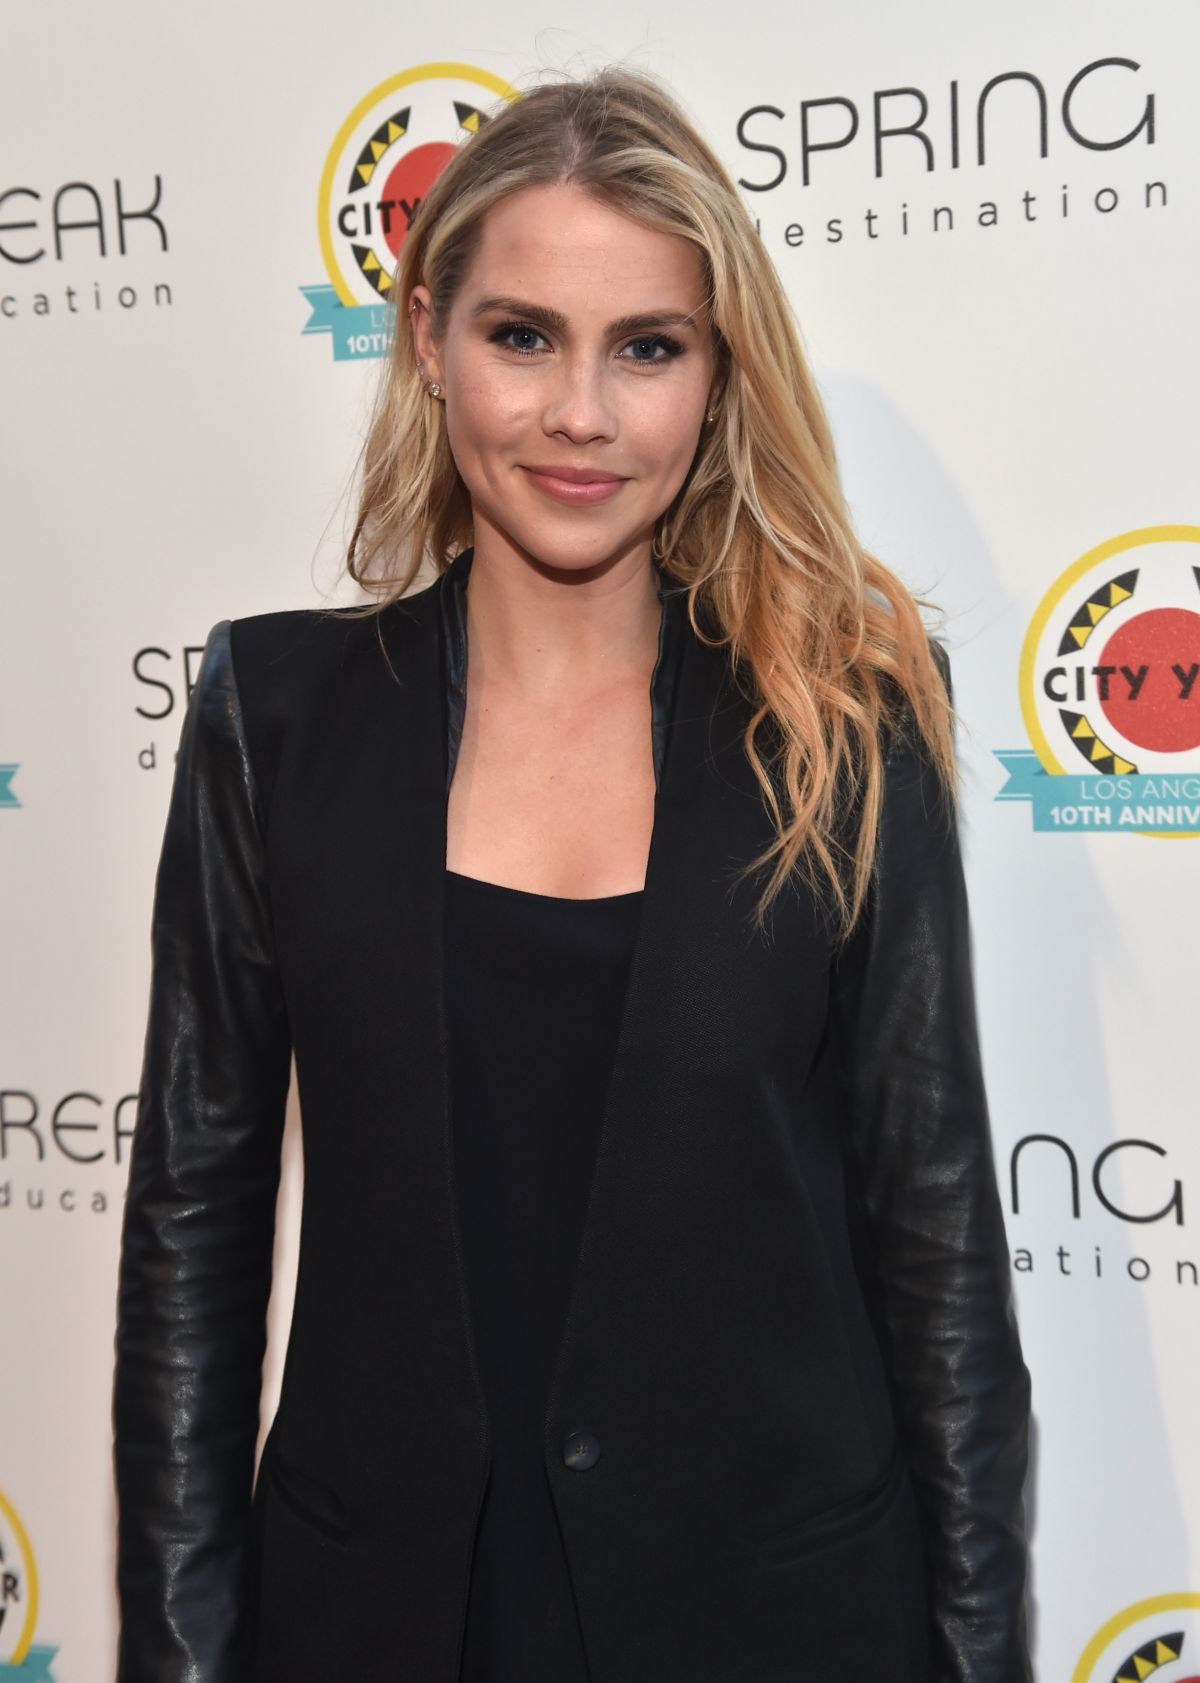 CLAIRE HOLT at City Year Los Angeles Spring Break in Los Angeles 05/06/2017